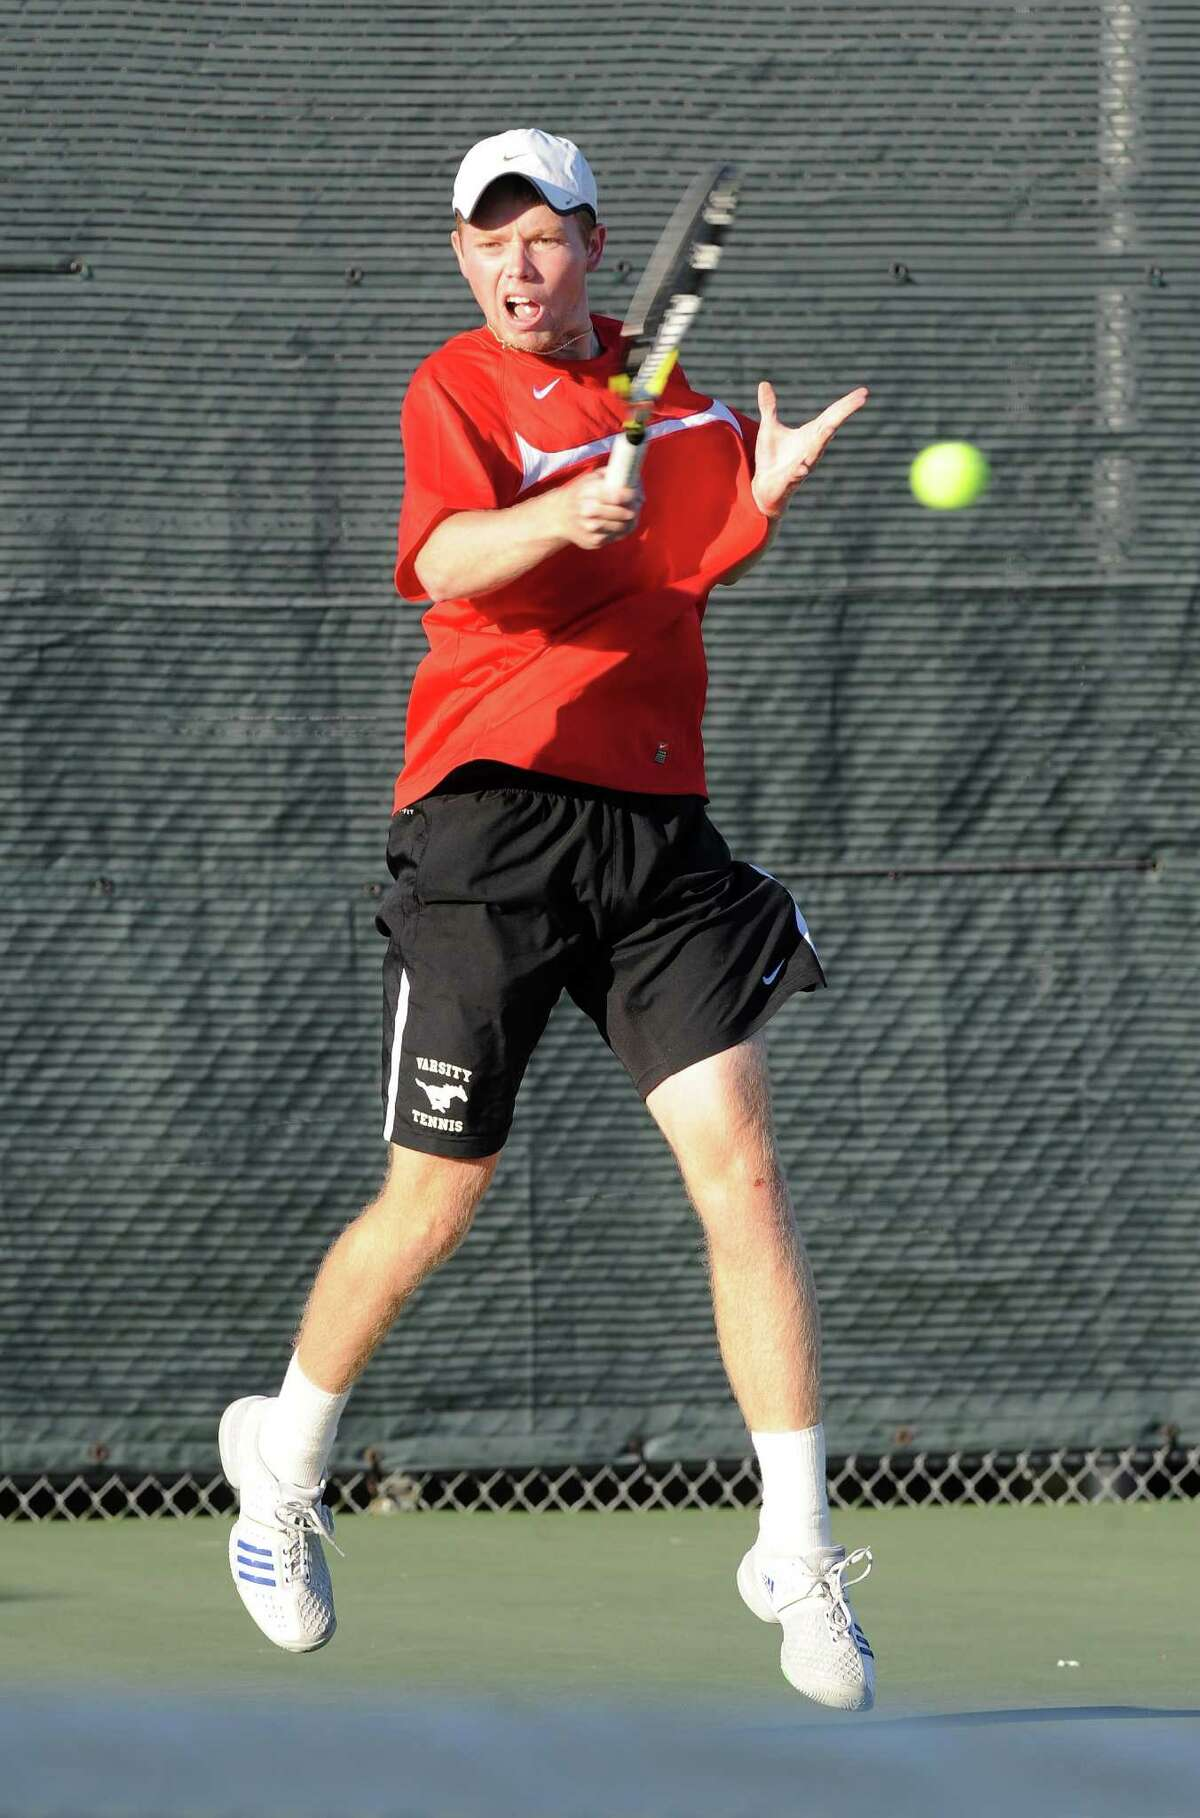 Memorial senior Thomas Pecor is among several Mustang tennis players expected to do well at the upcoming Class 5A-Region III Tennis Tournament at Deer Park April 16-17.